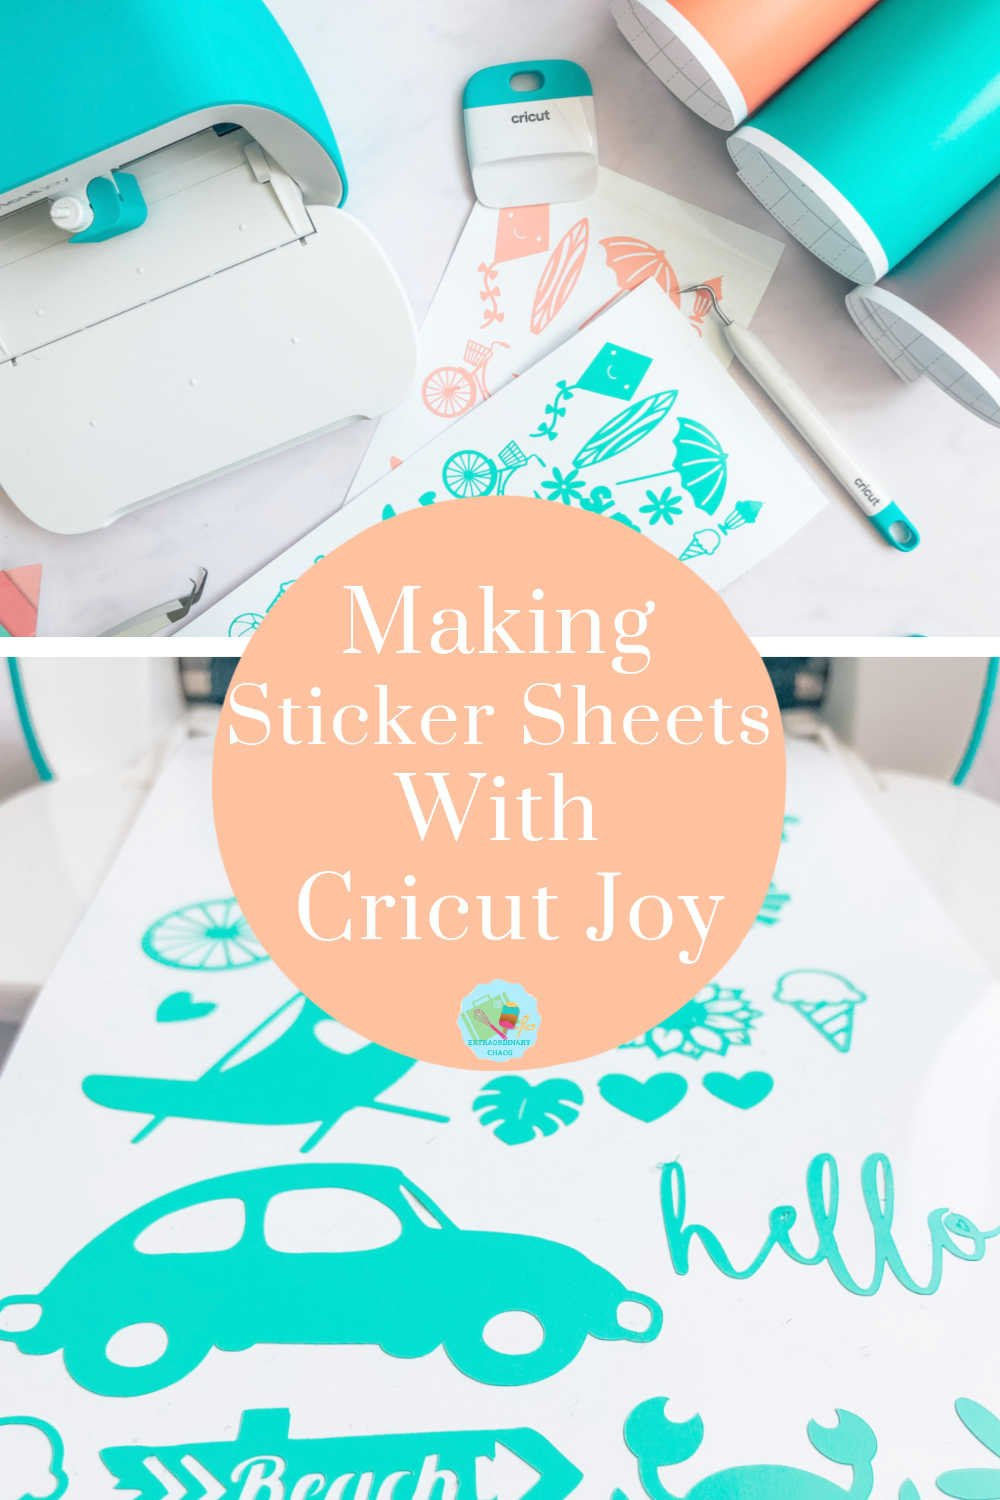 How To Make Cricut Vinyl Stickers, to sell for crafts and  parties or used for scrapbooking and school work